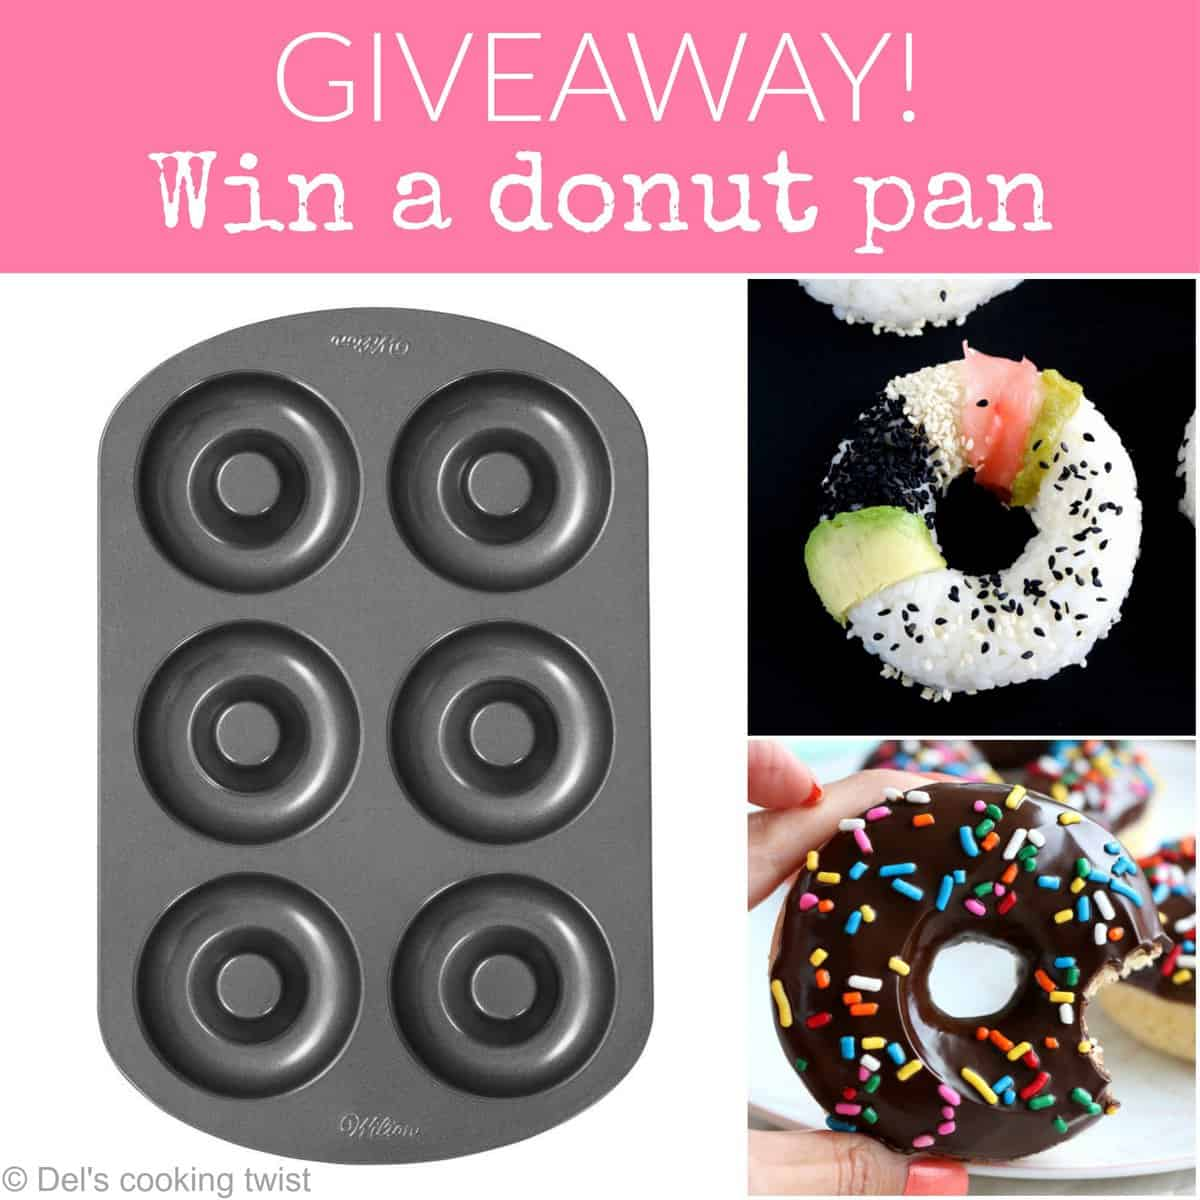 Giveaway win a donut pan